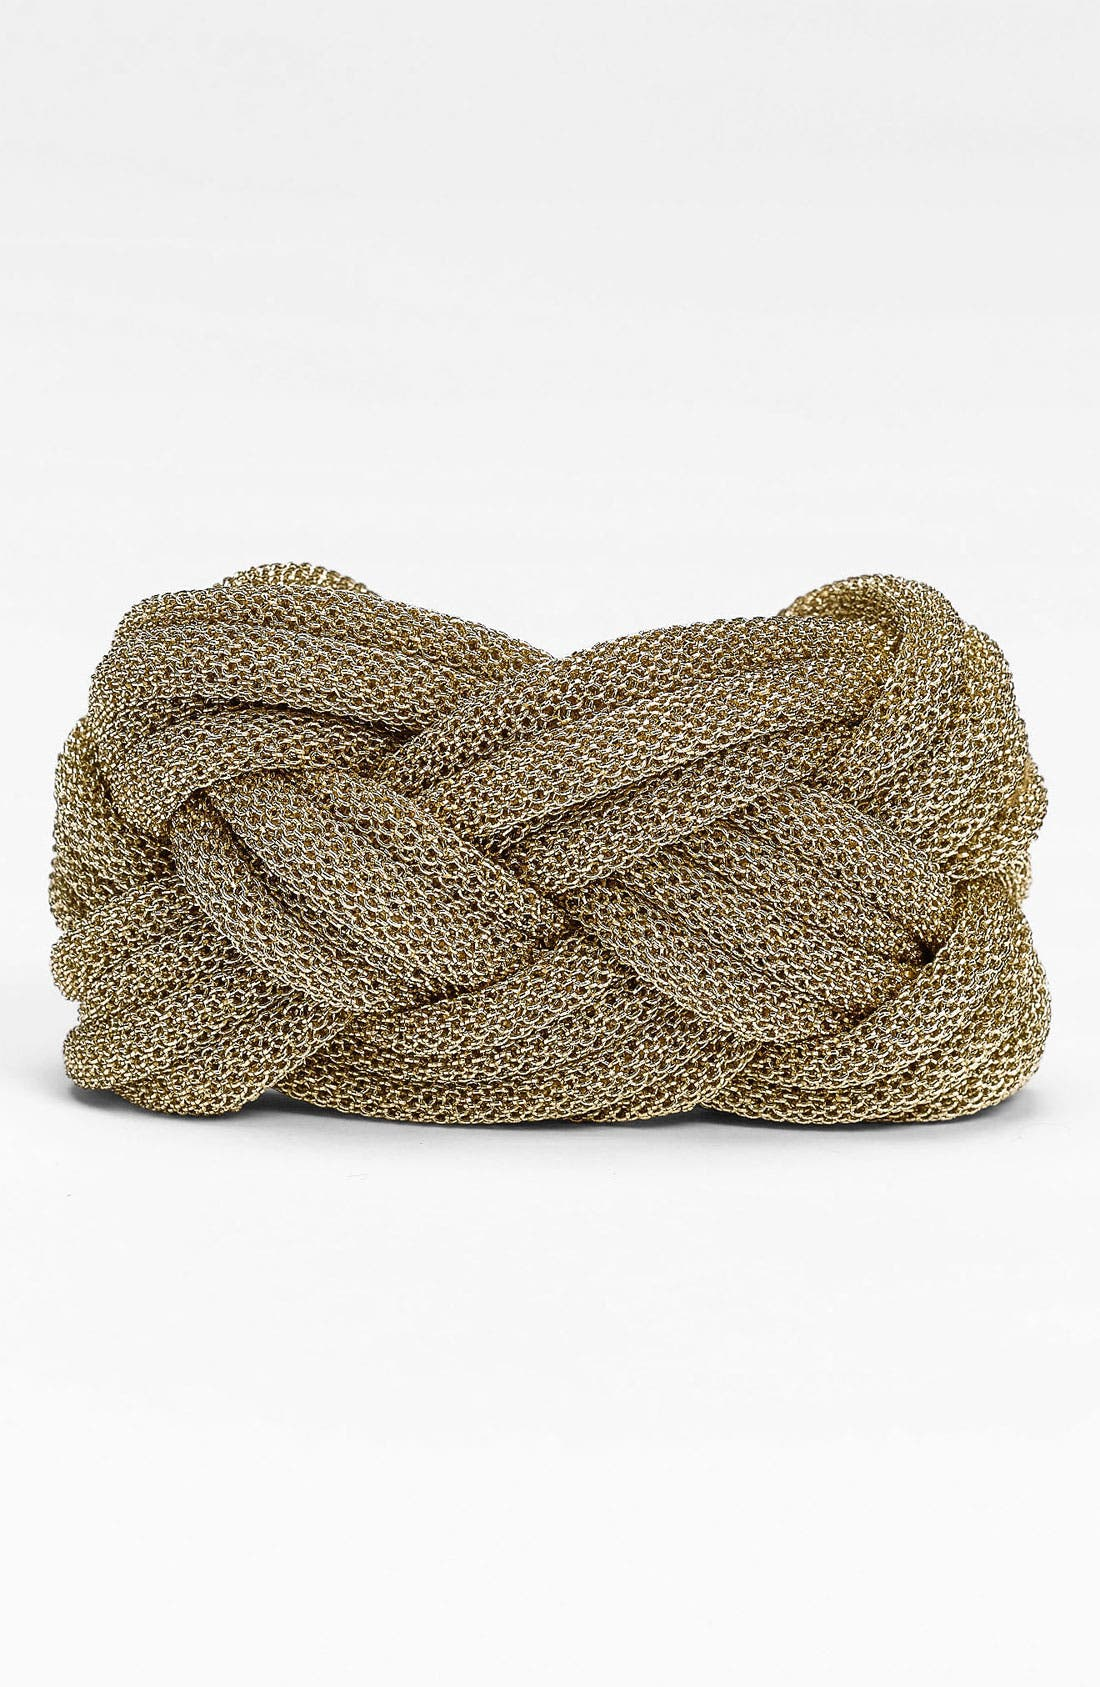 Main Image - Adami & Martucci 'Mesh' Large Braided Bracelet (Nordstrom Exclusive)